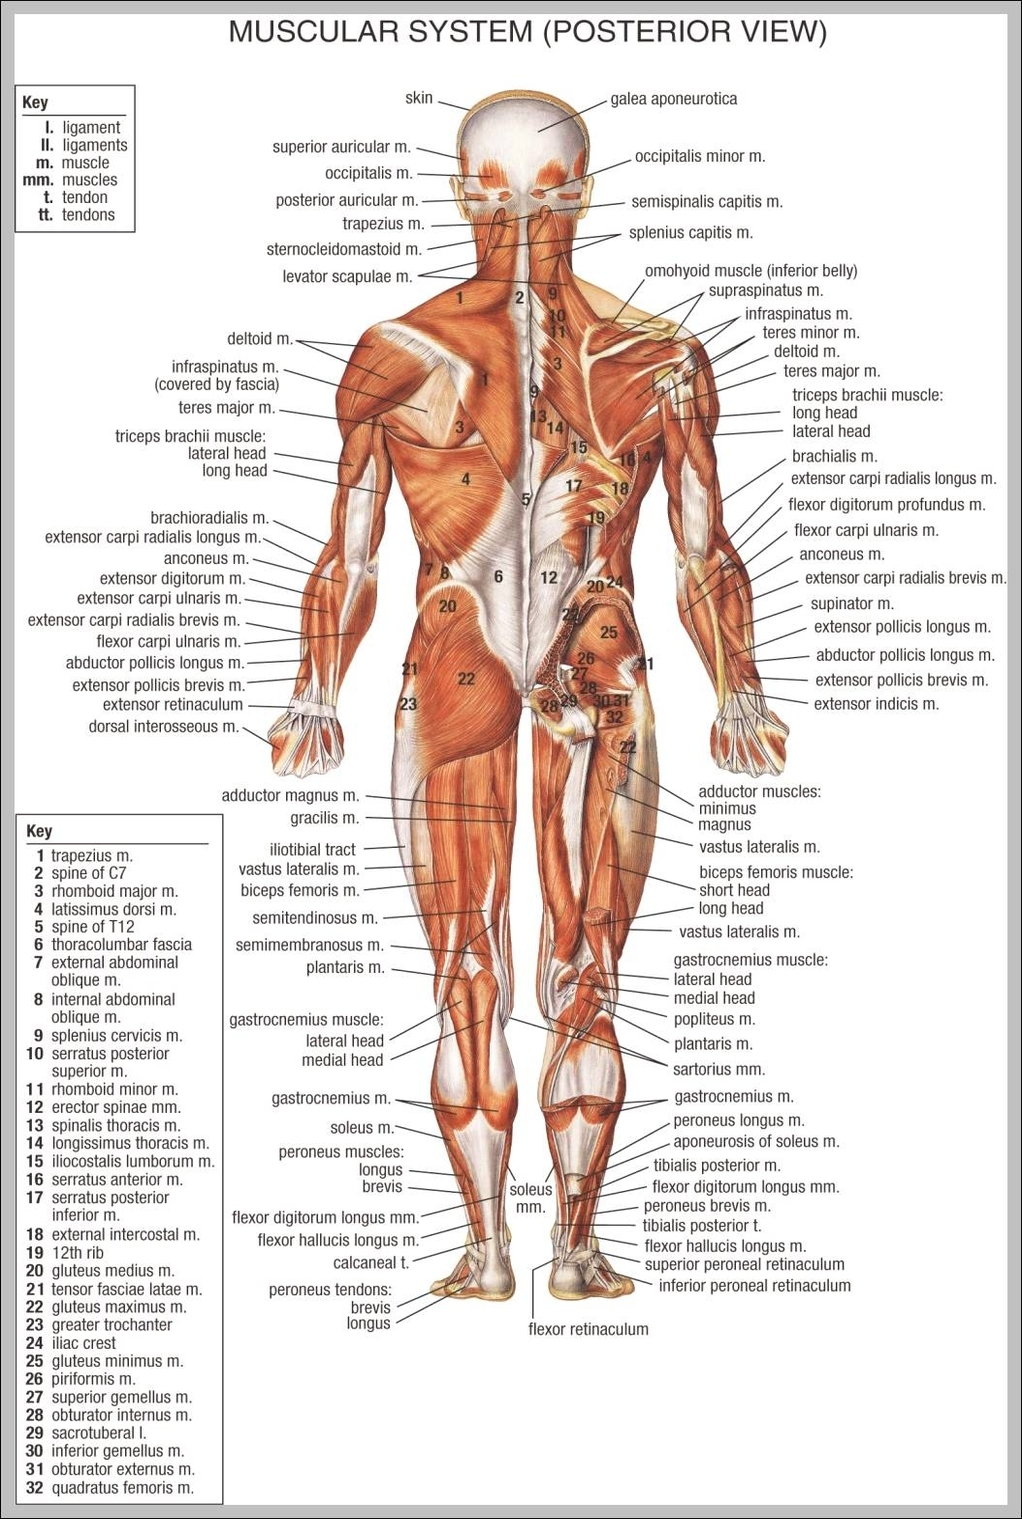 Diagrams anatomy system human body anatomy diagram and chart anatomy muscular system 10241586 diagram anatomy muscular system 10241586 chart human anatomy diagrams and charts explained ccuart Image collections